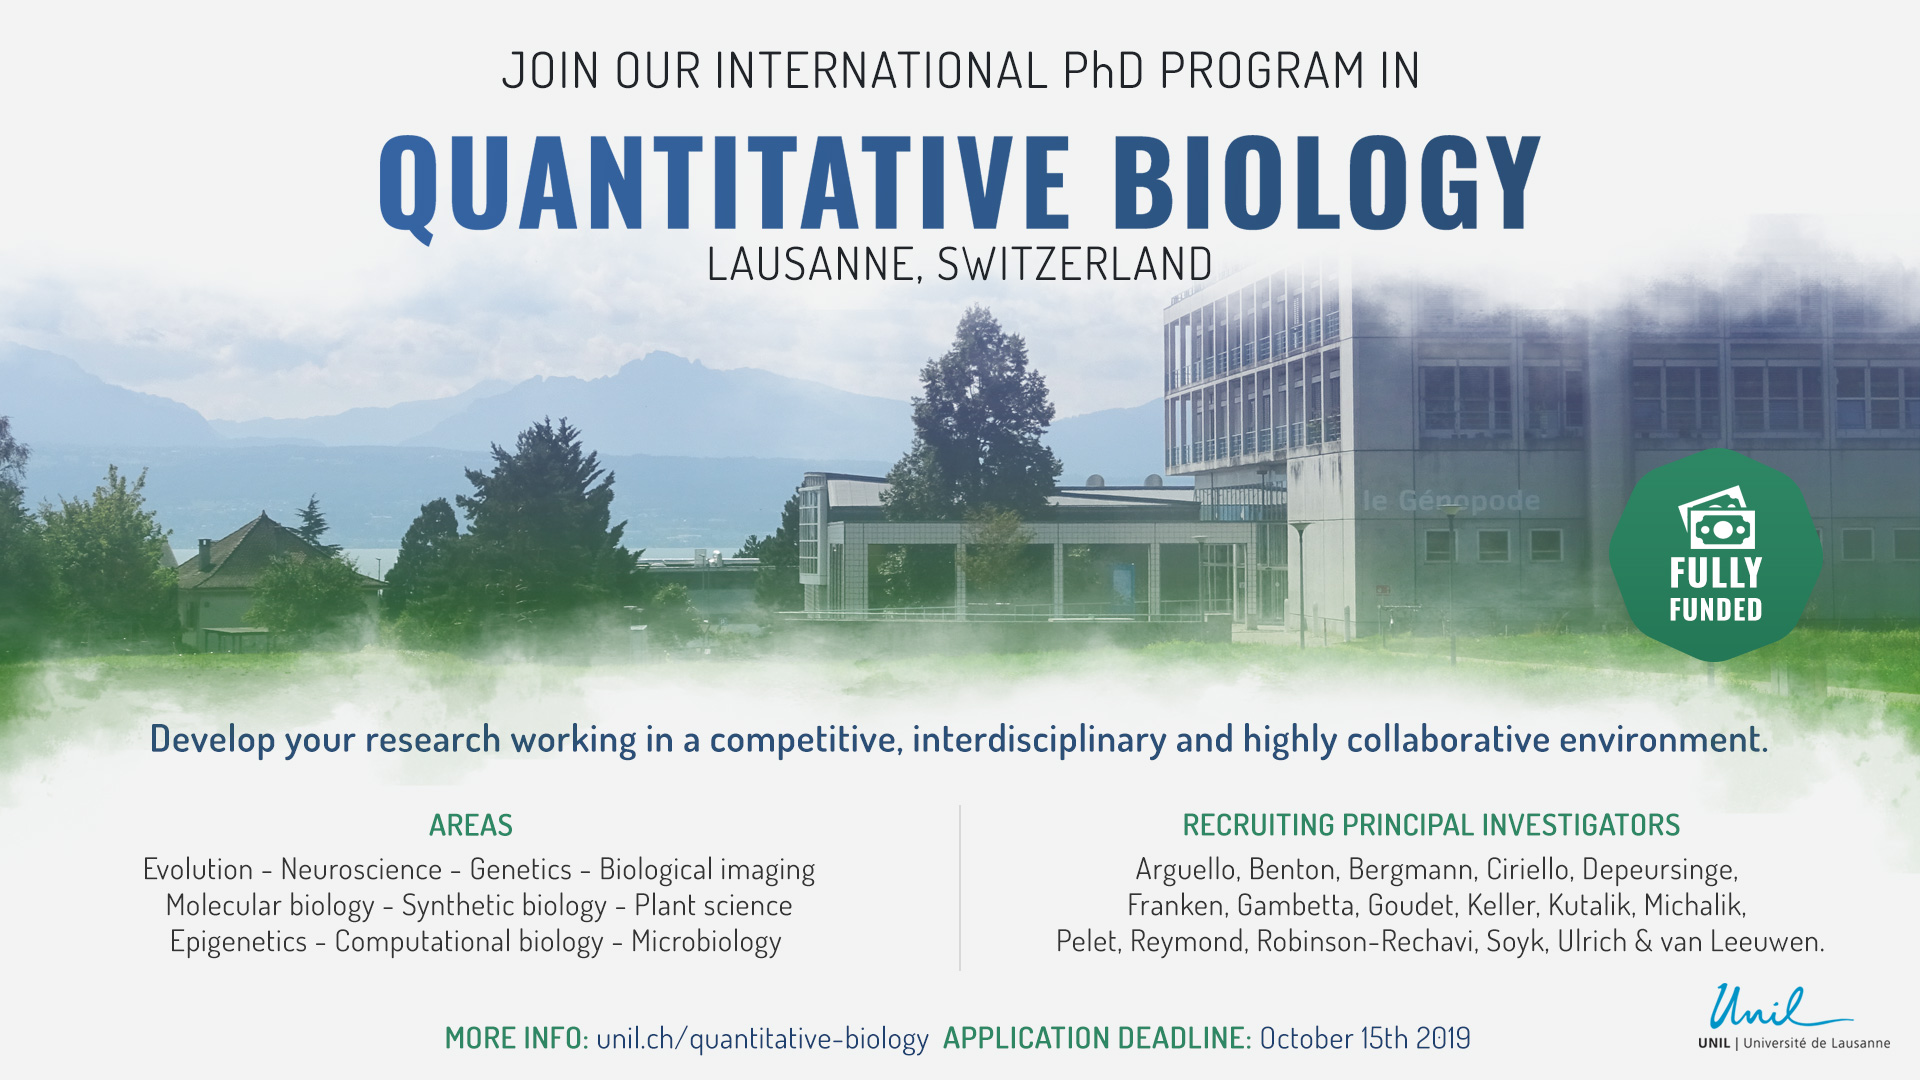 https://www.unil.ch/quantitative-biology/home/menuinst/join-the-qb-program/joint-phd-call-late-2019.html